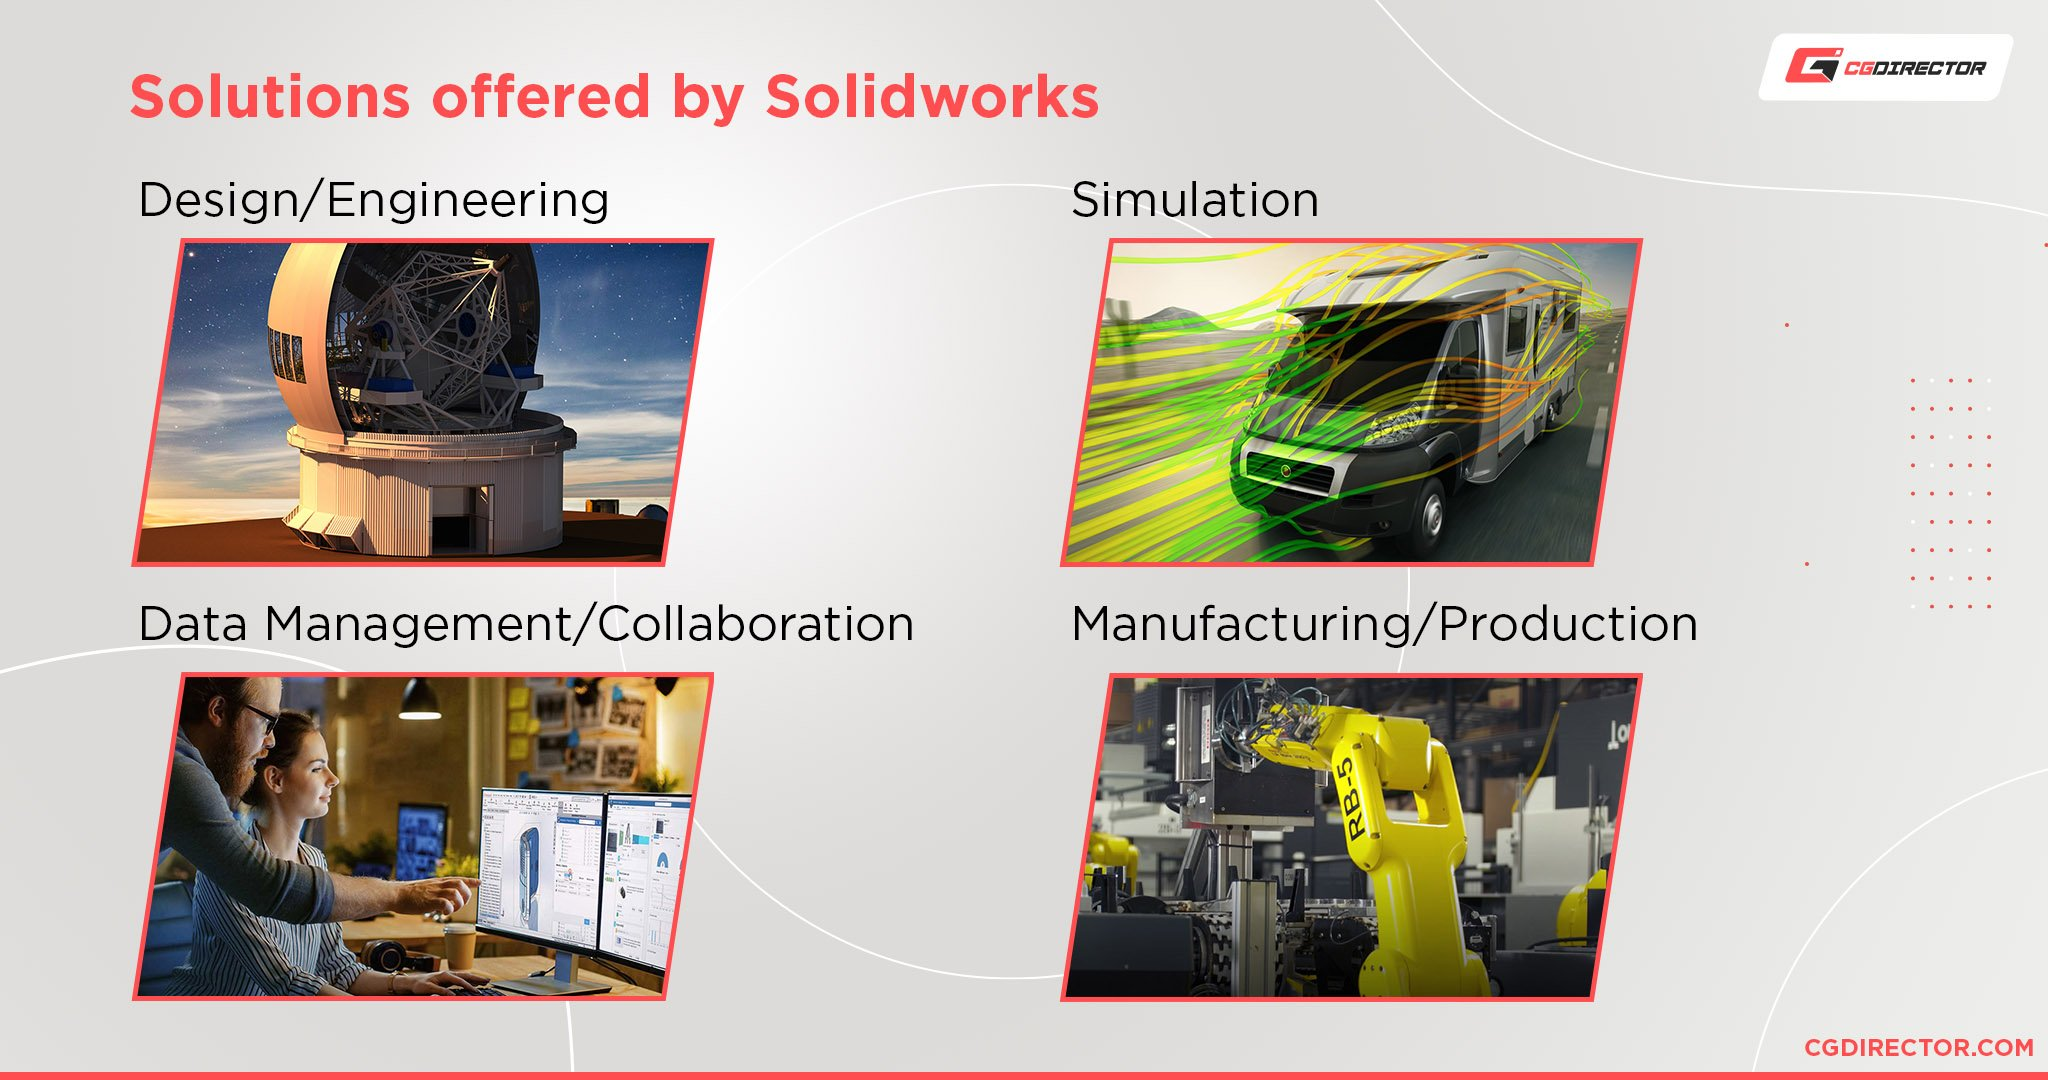 Applications of Solidworks